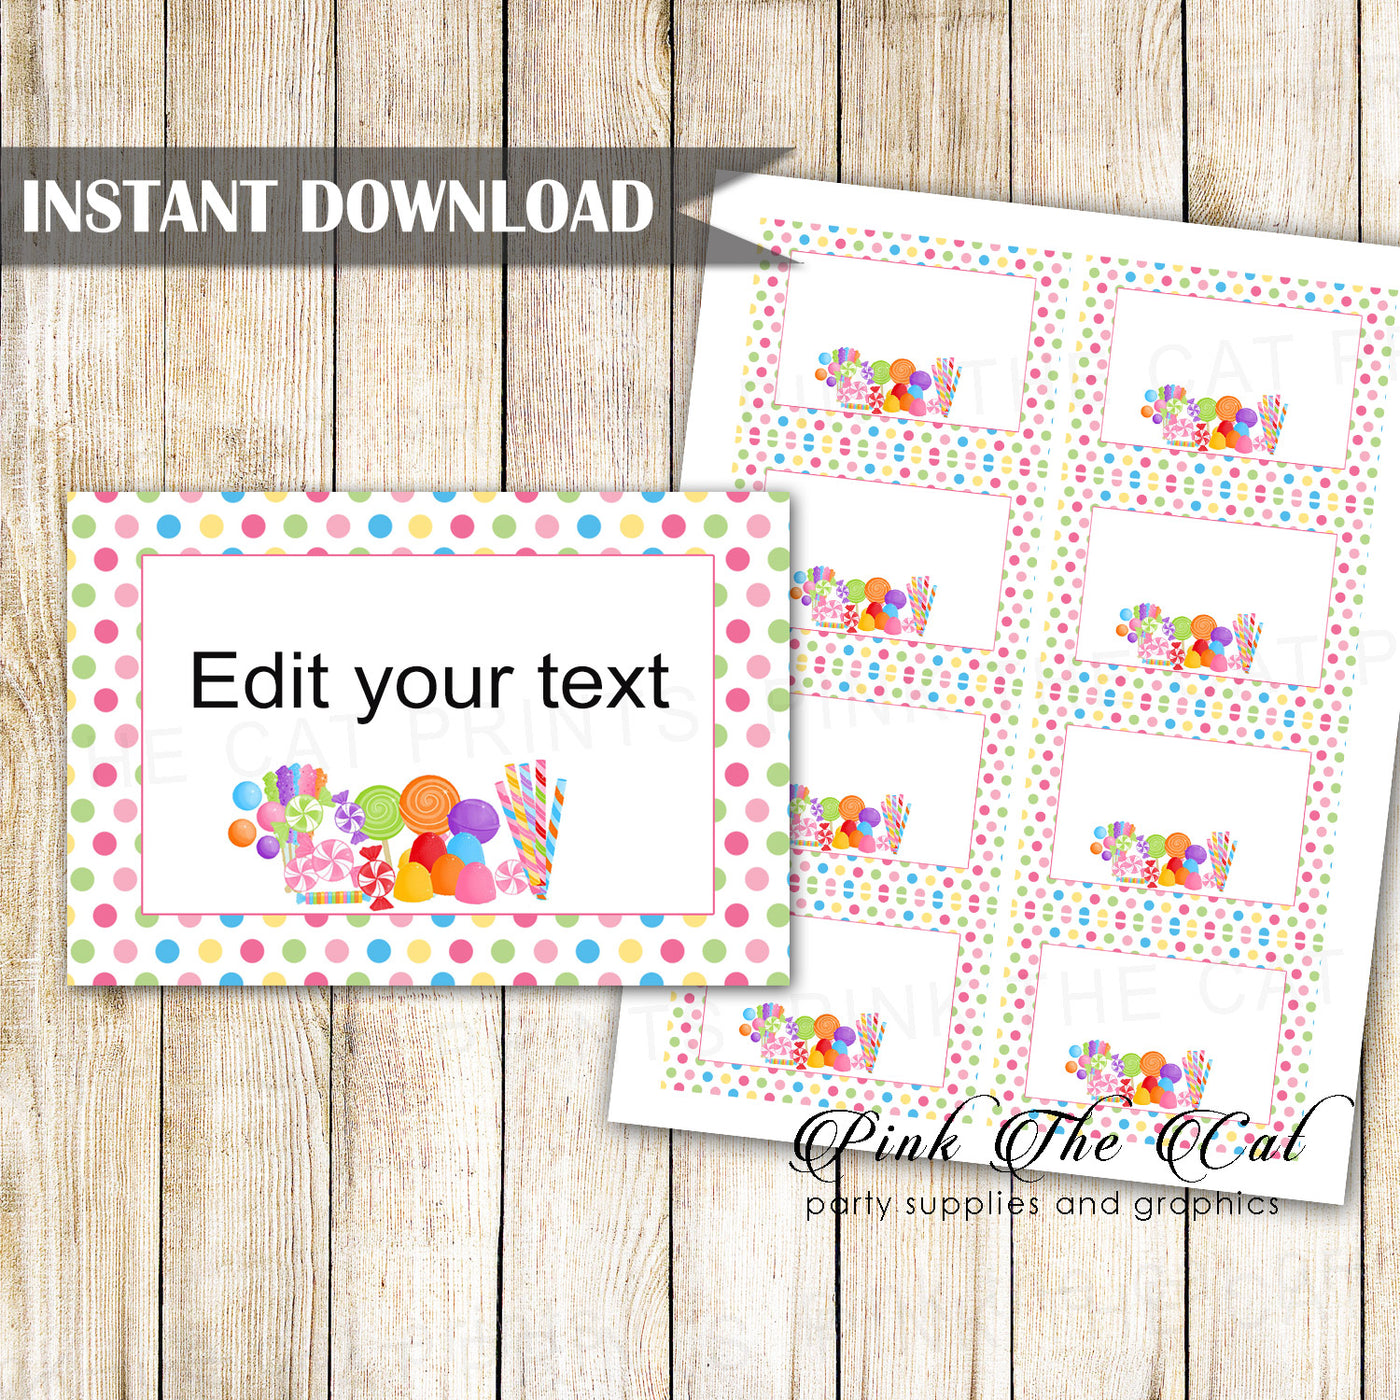 graphic relating to Small Printable Labels identify Sweet concept like label tag little card printable